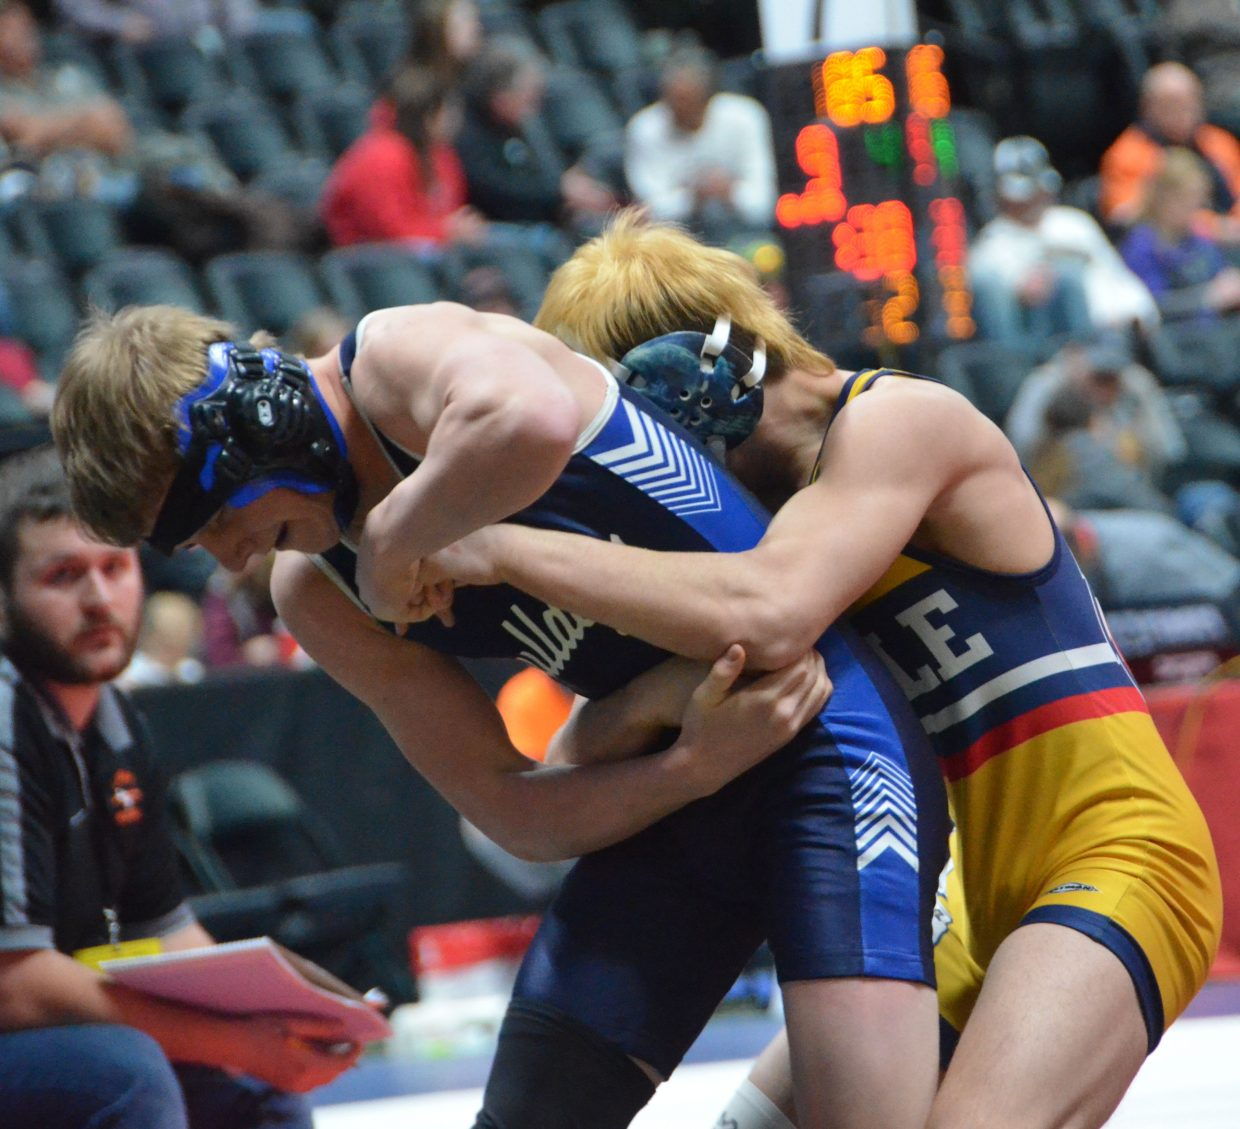 Moffat County High School wrestler Isiaih Herod works to break the grip of Rifle's Cauy Smith during CHSAA State Championships.